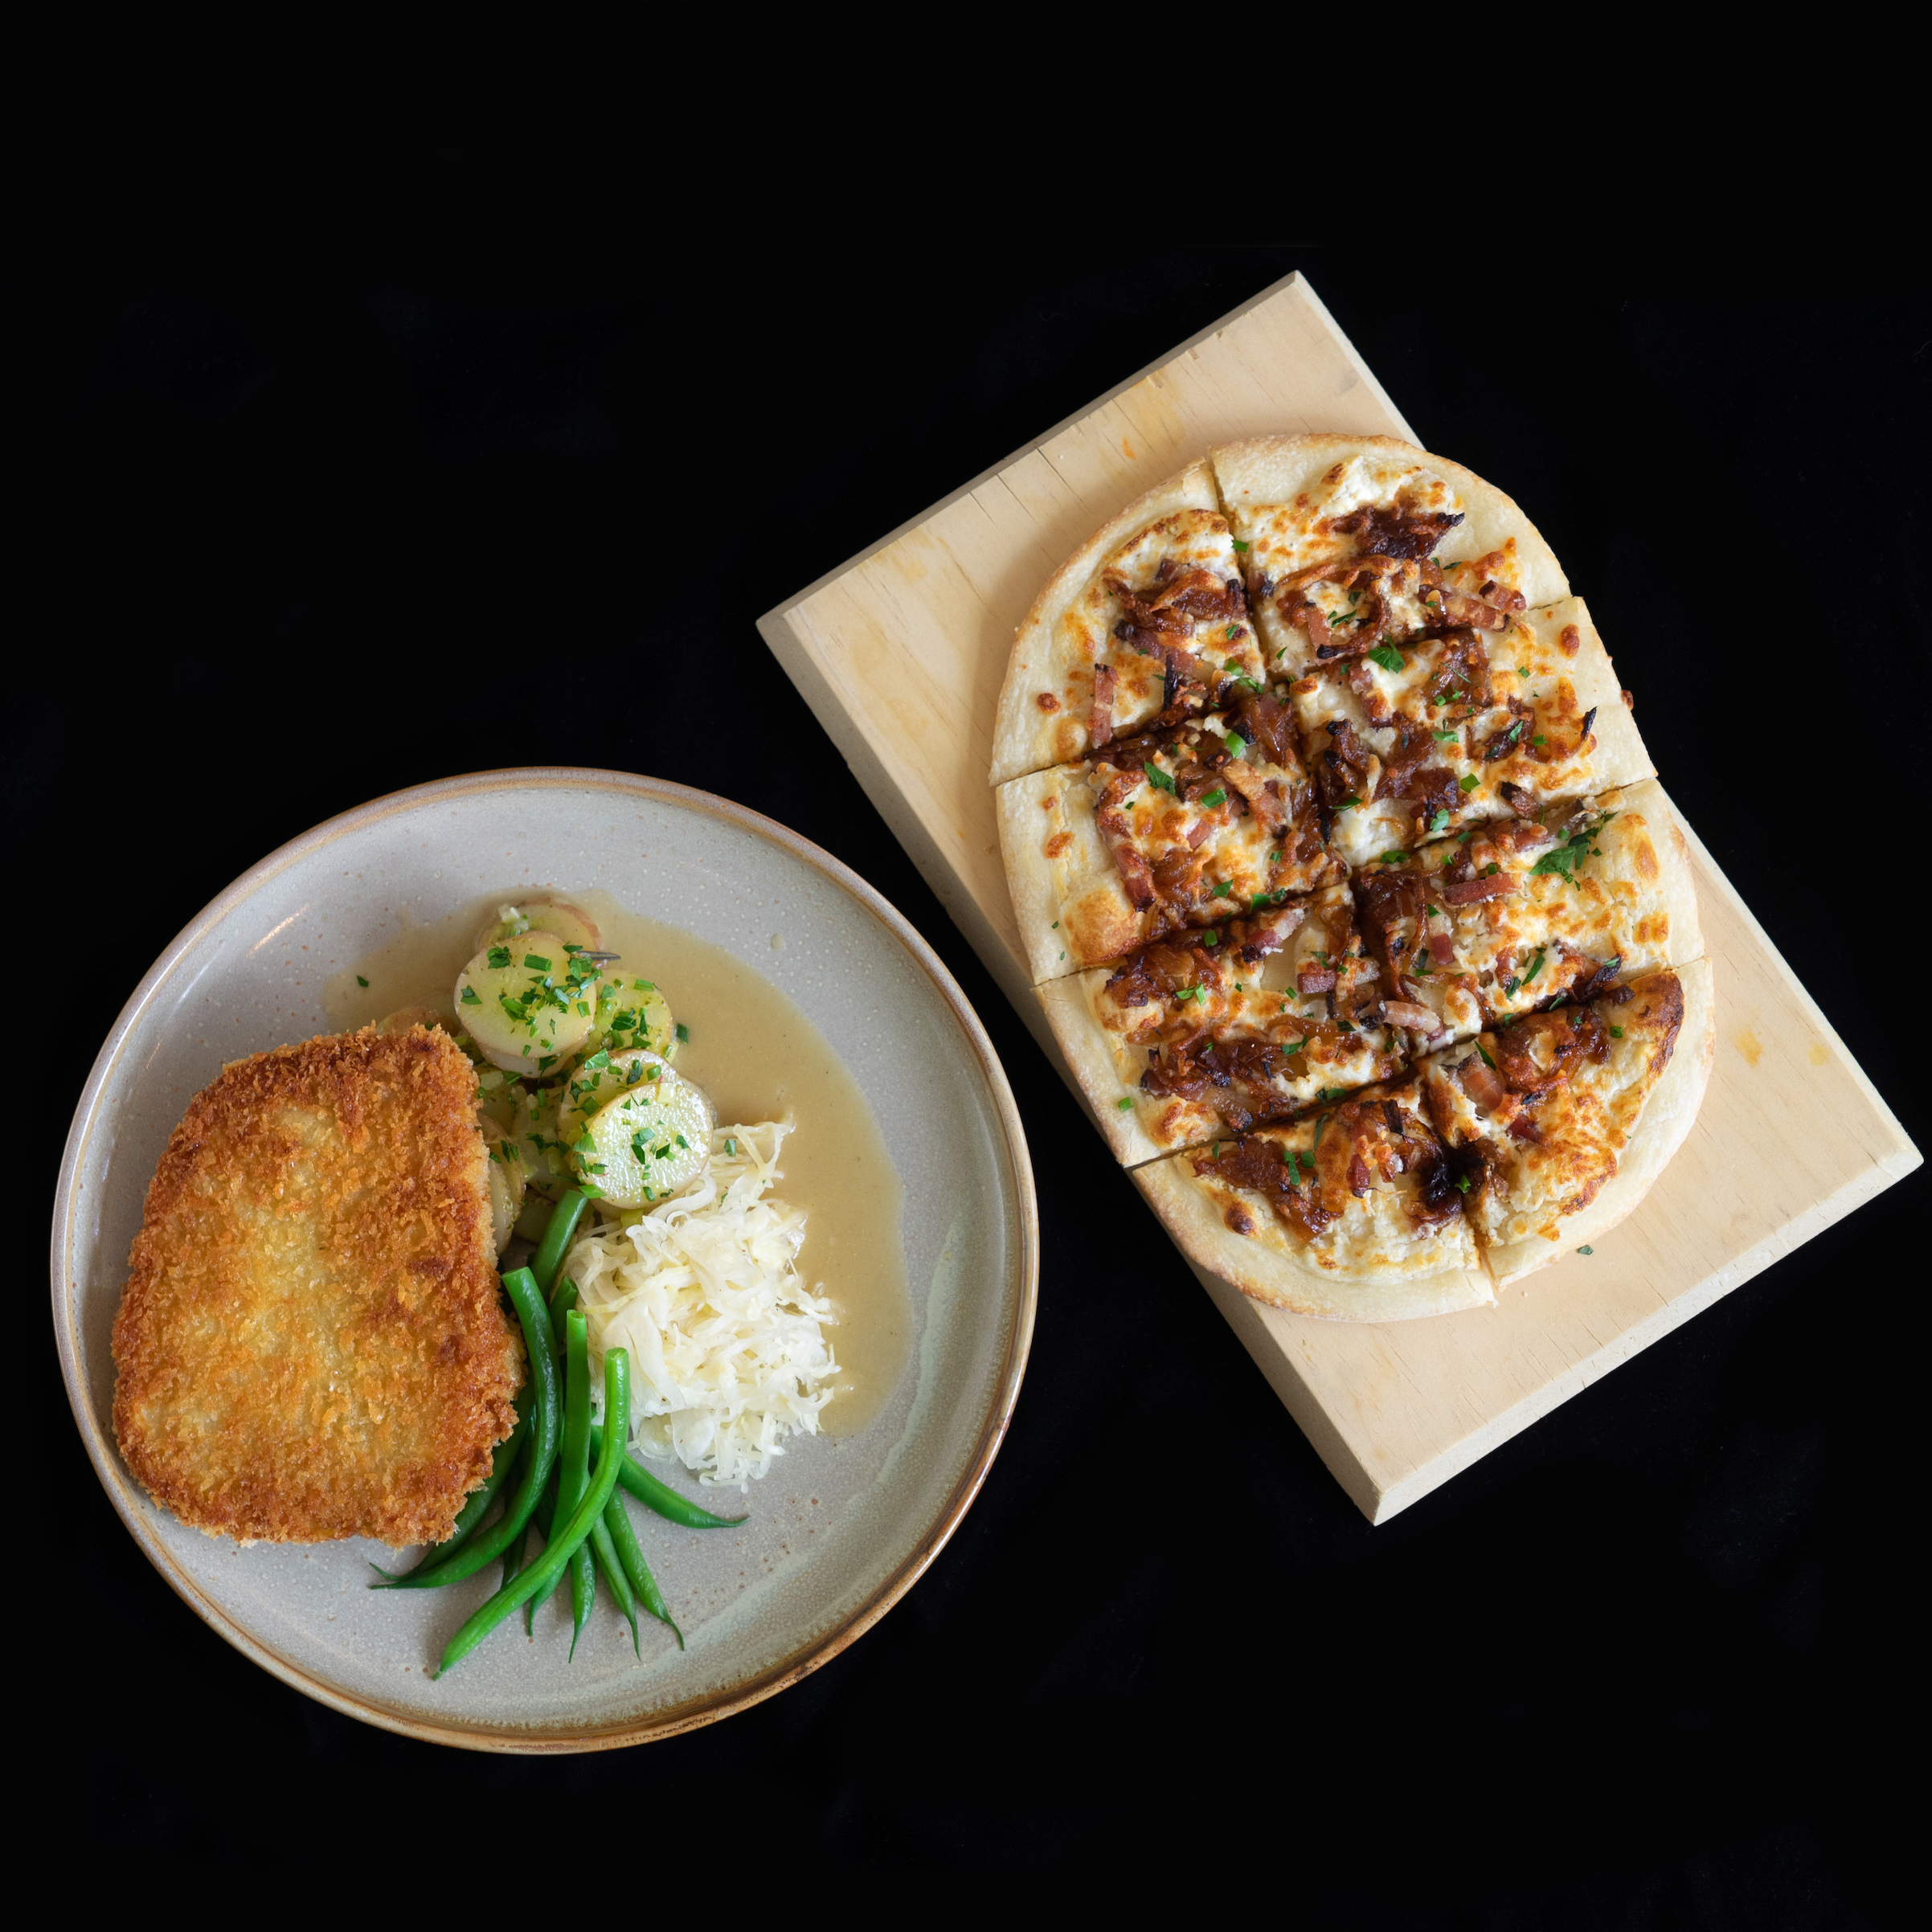 Stratford Chefs School's Schnitzel Finish-at-Home Meal Kit